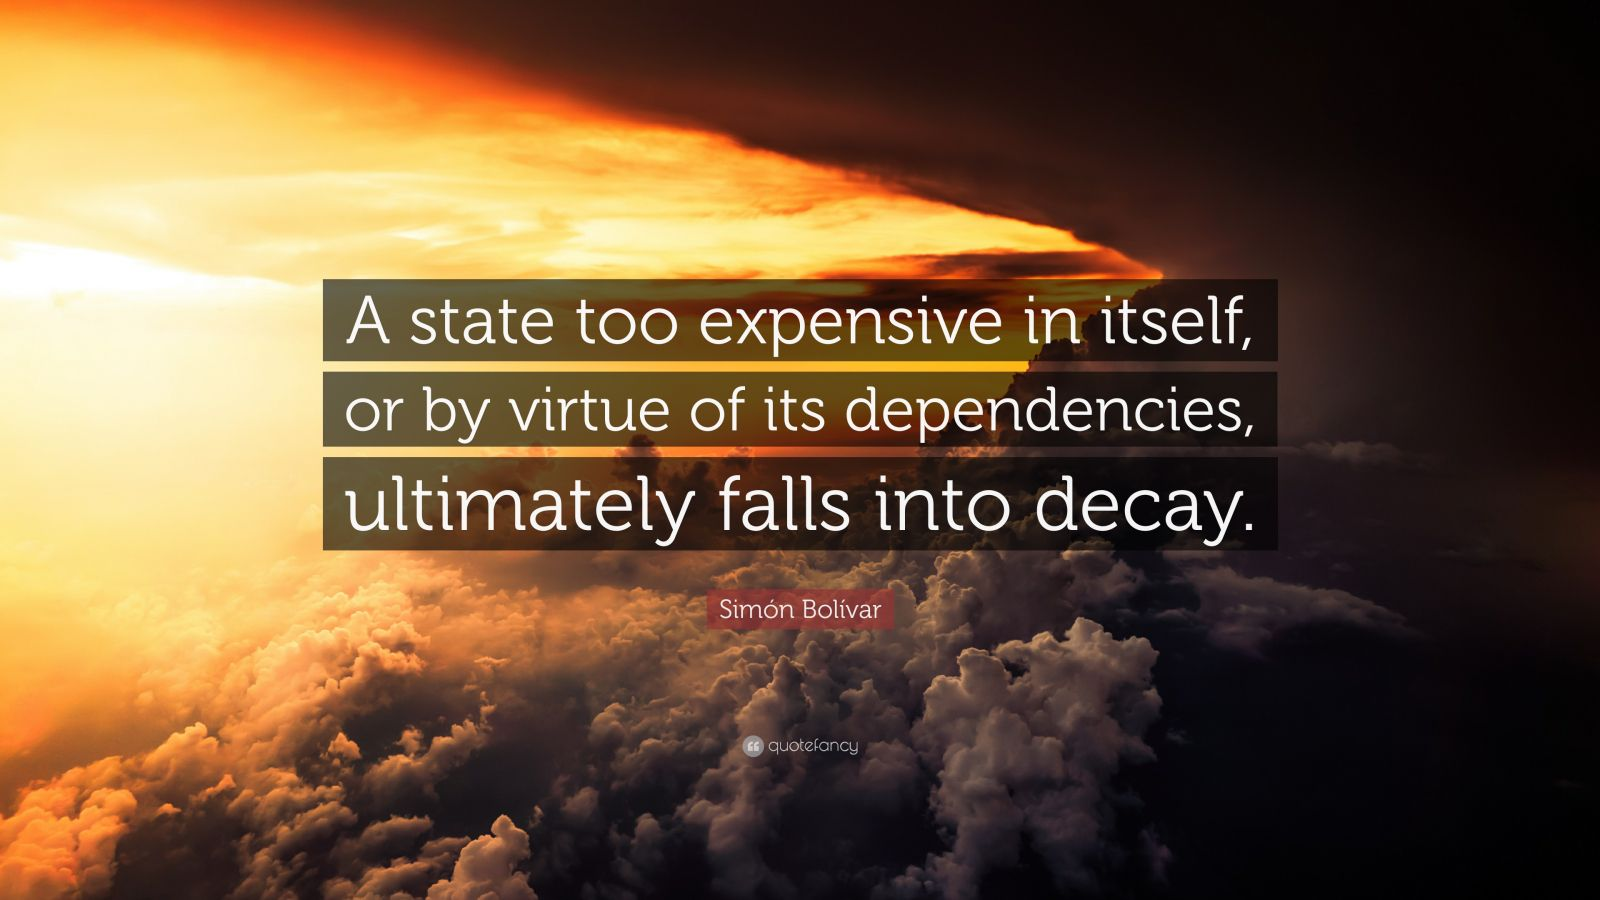 """Simón Bolívar Quote: """"A state too expensive in itself, or by virtue of its dependencies, ultimately falls into decay."""""""